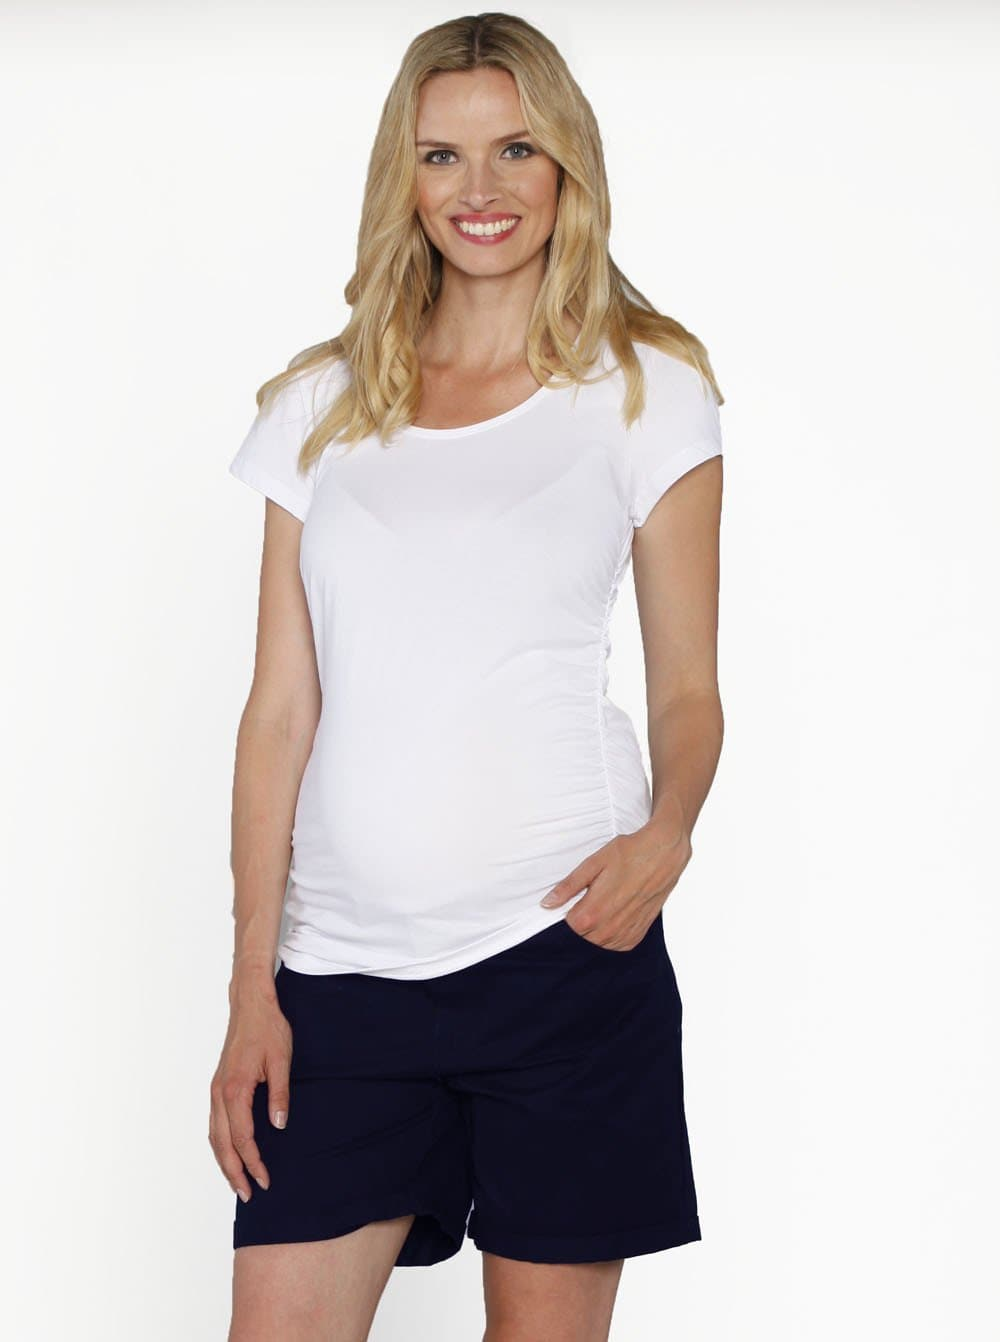 Casual Summer Cotton Shorts - Navy - Angel Maternity - Maternity clothes - shop online